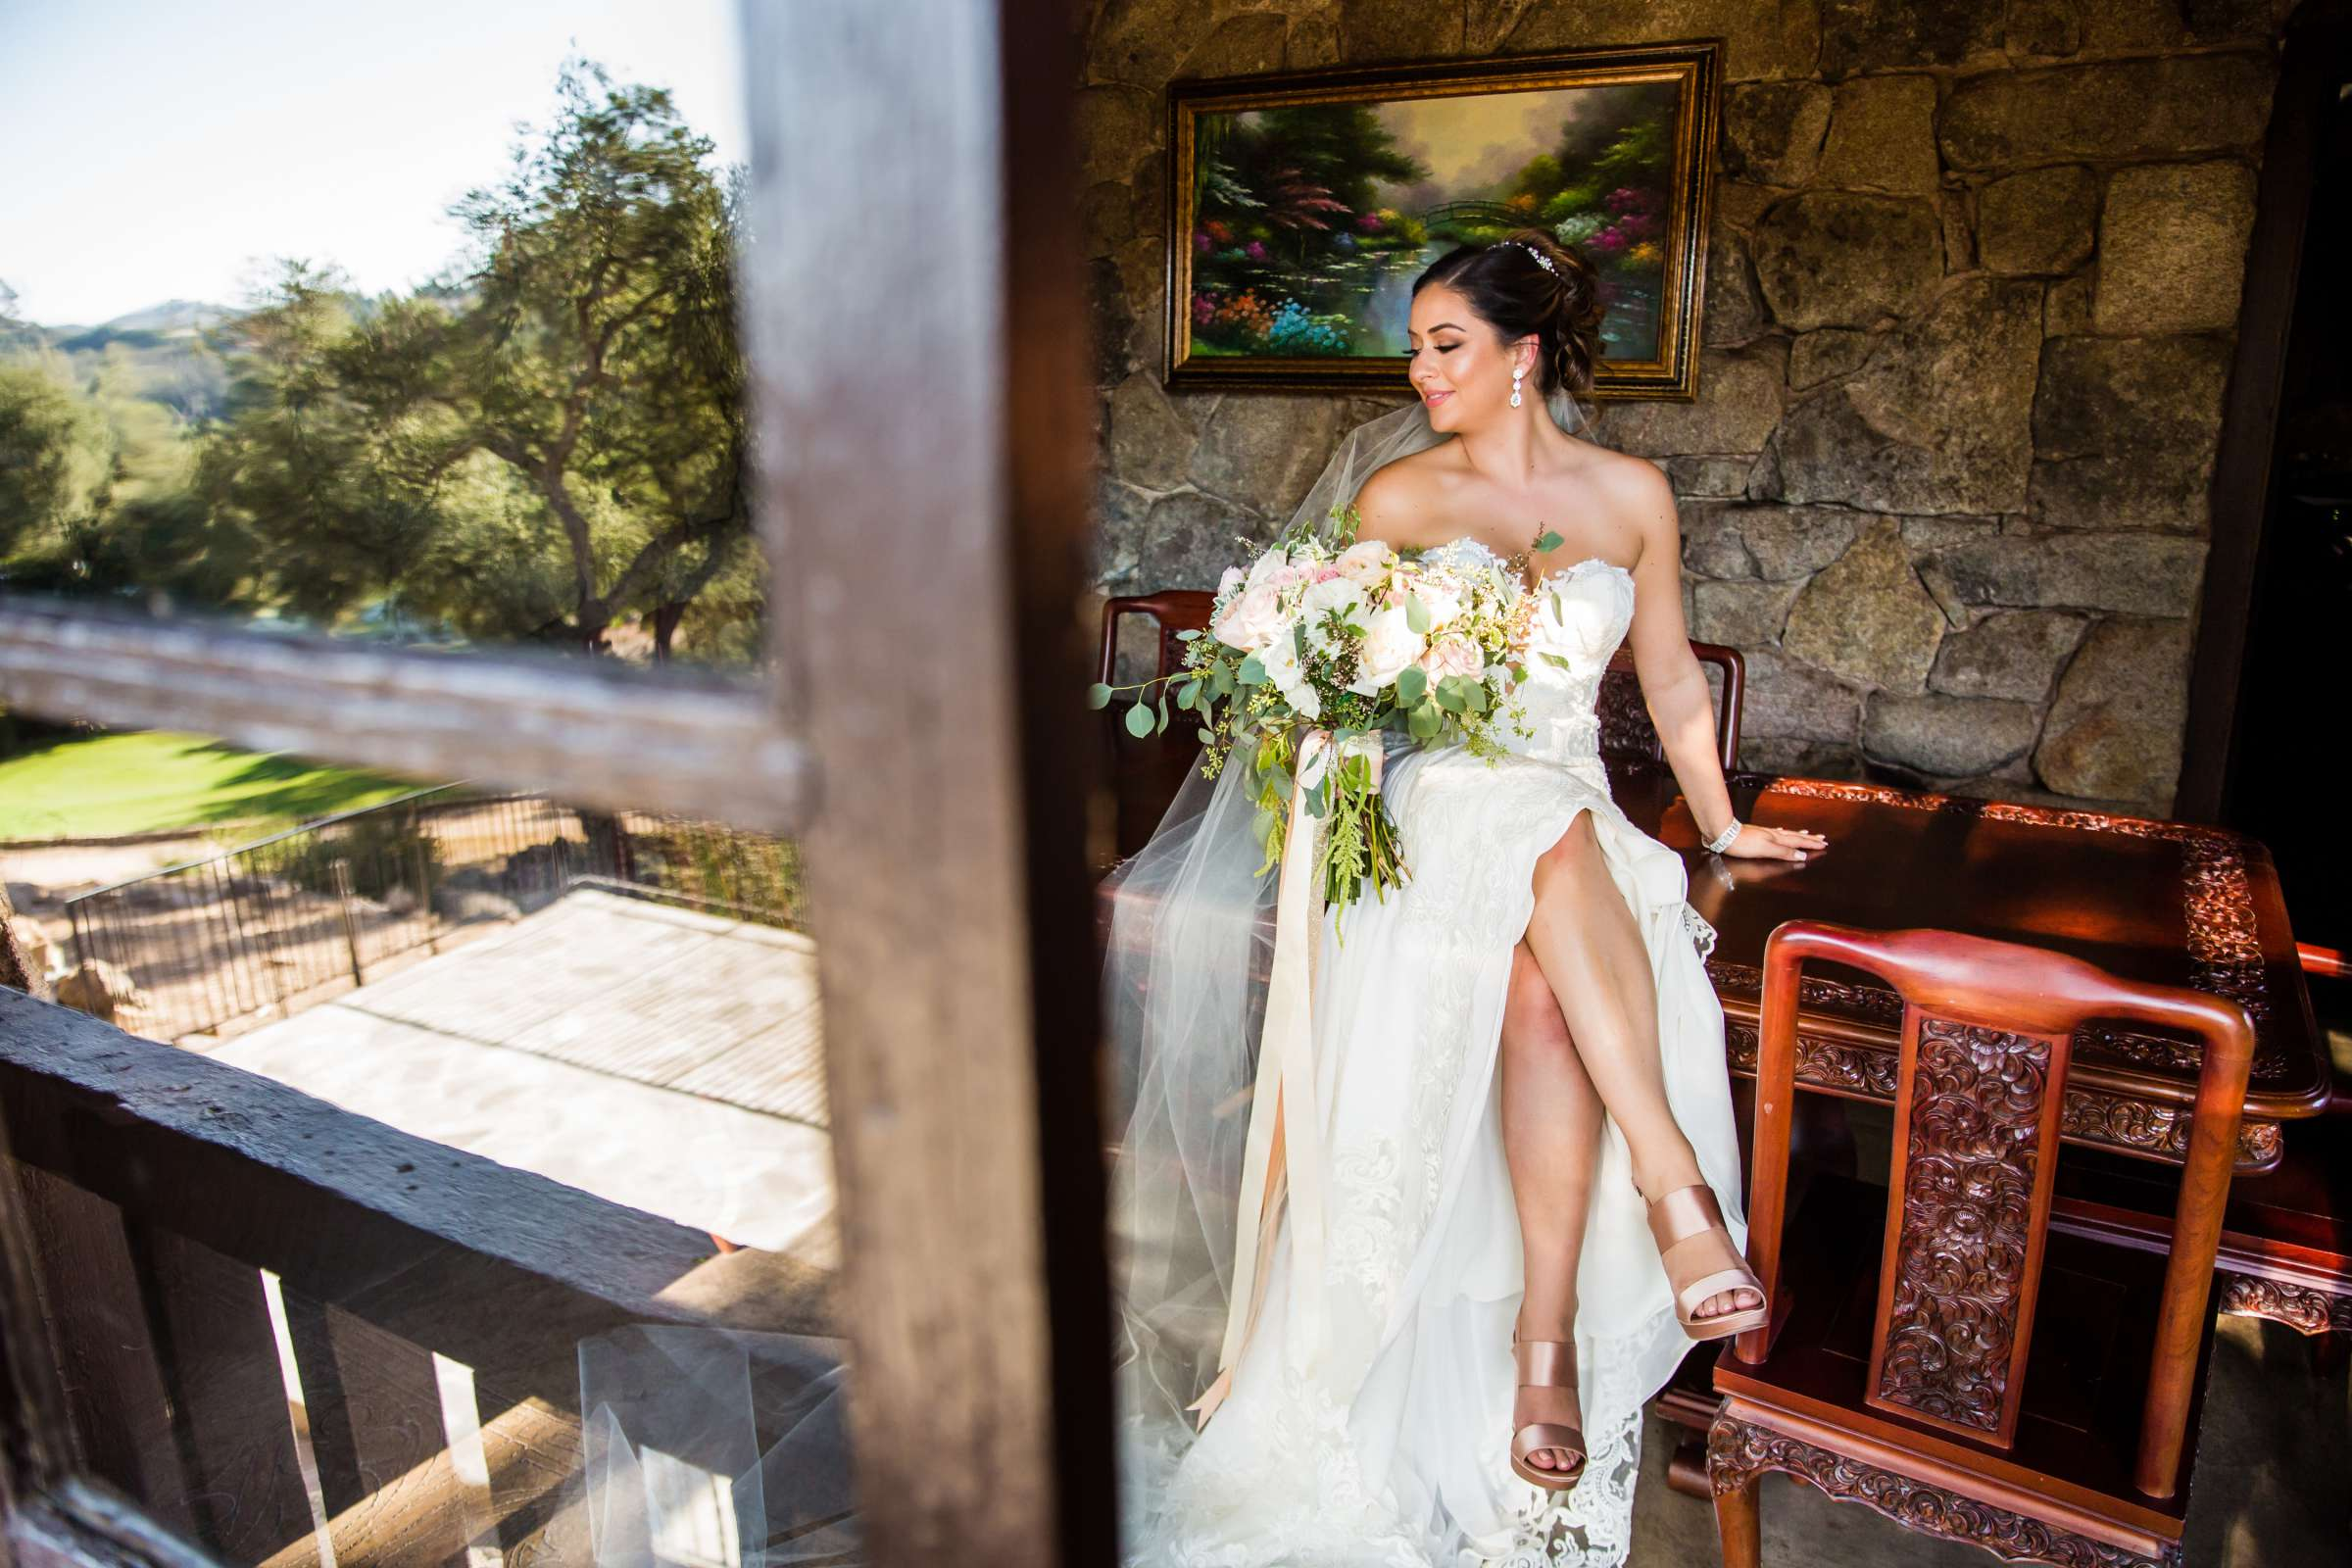 Mt Woodson Castle Wedding, Lauren and Travis Wedding Photo #5 by True Photography